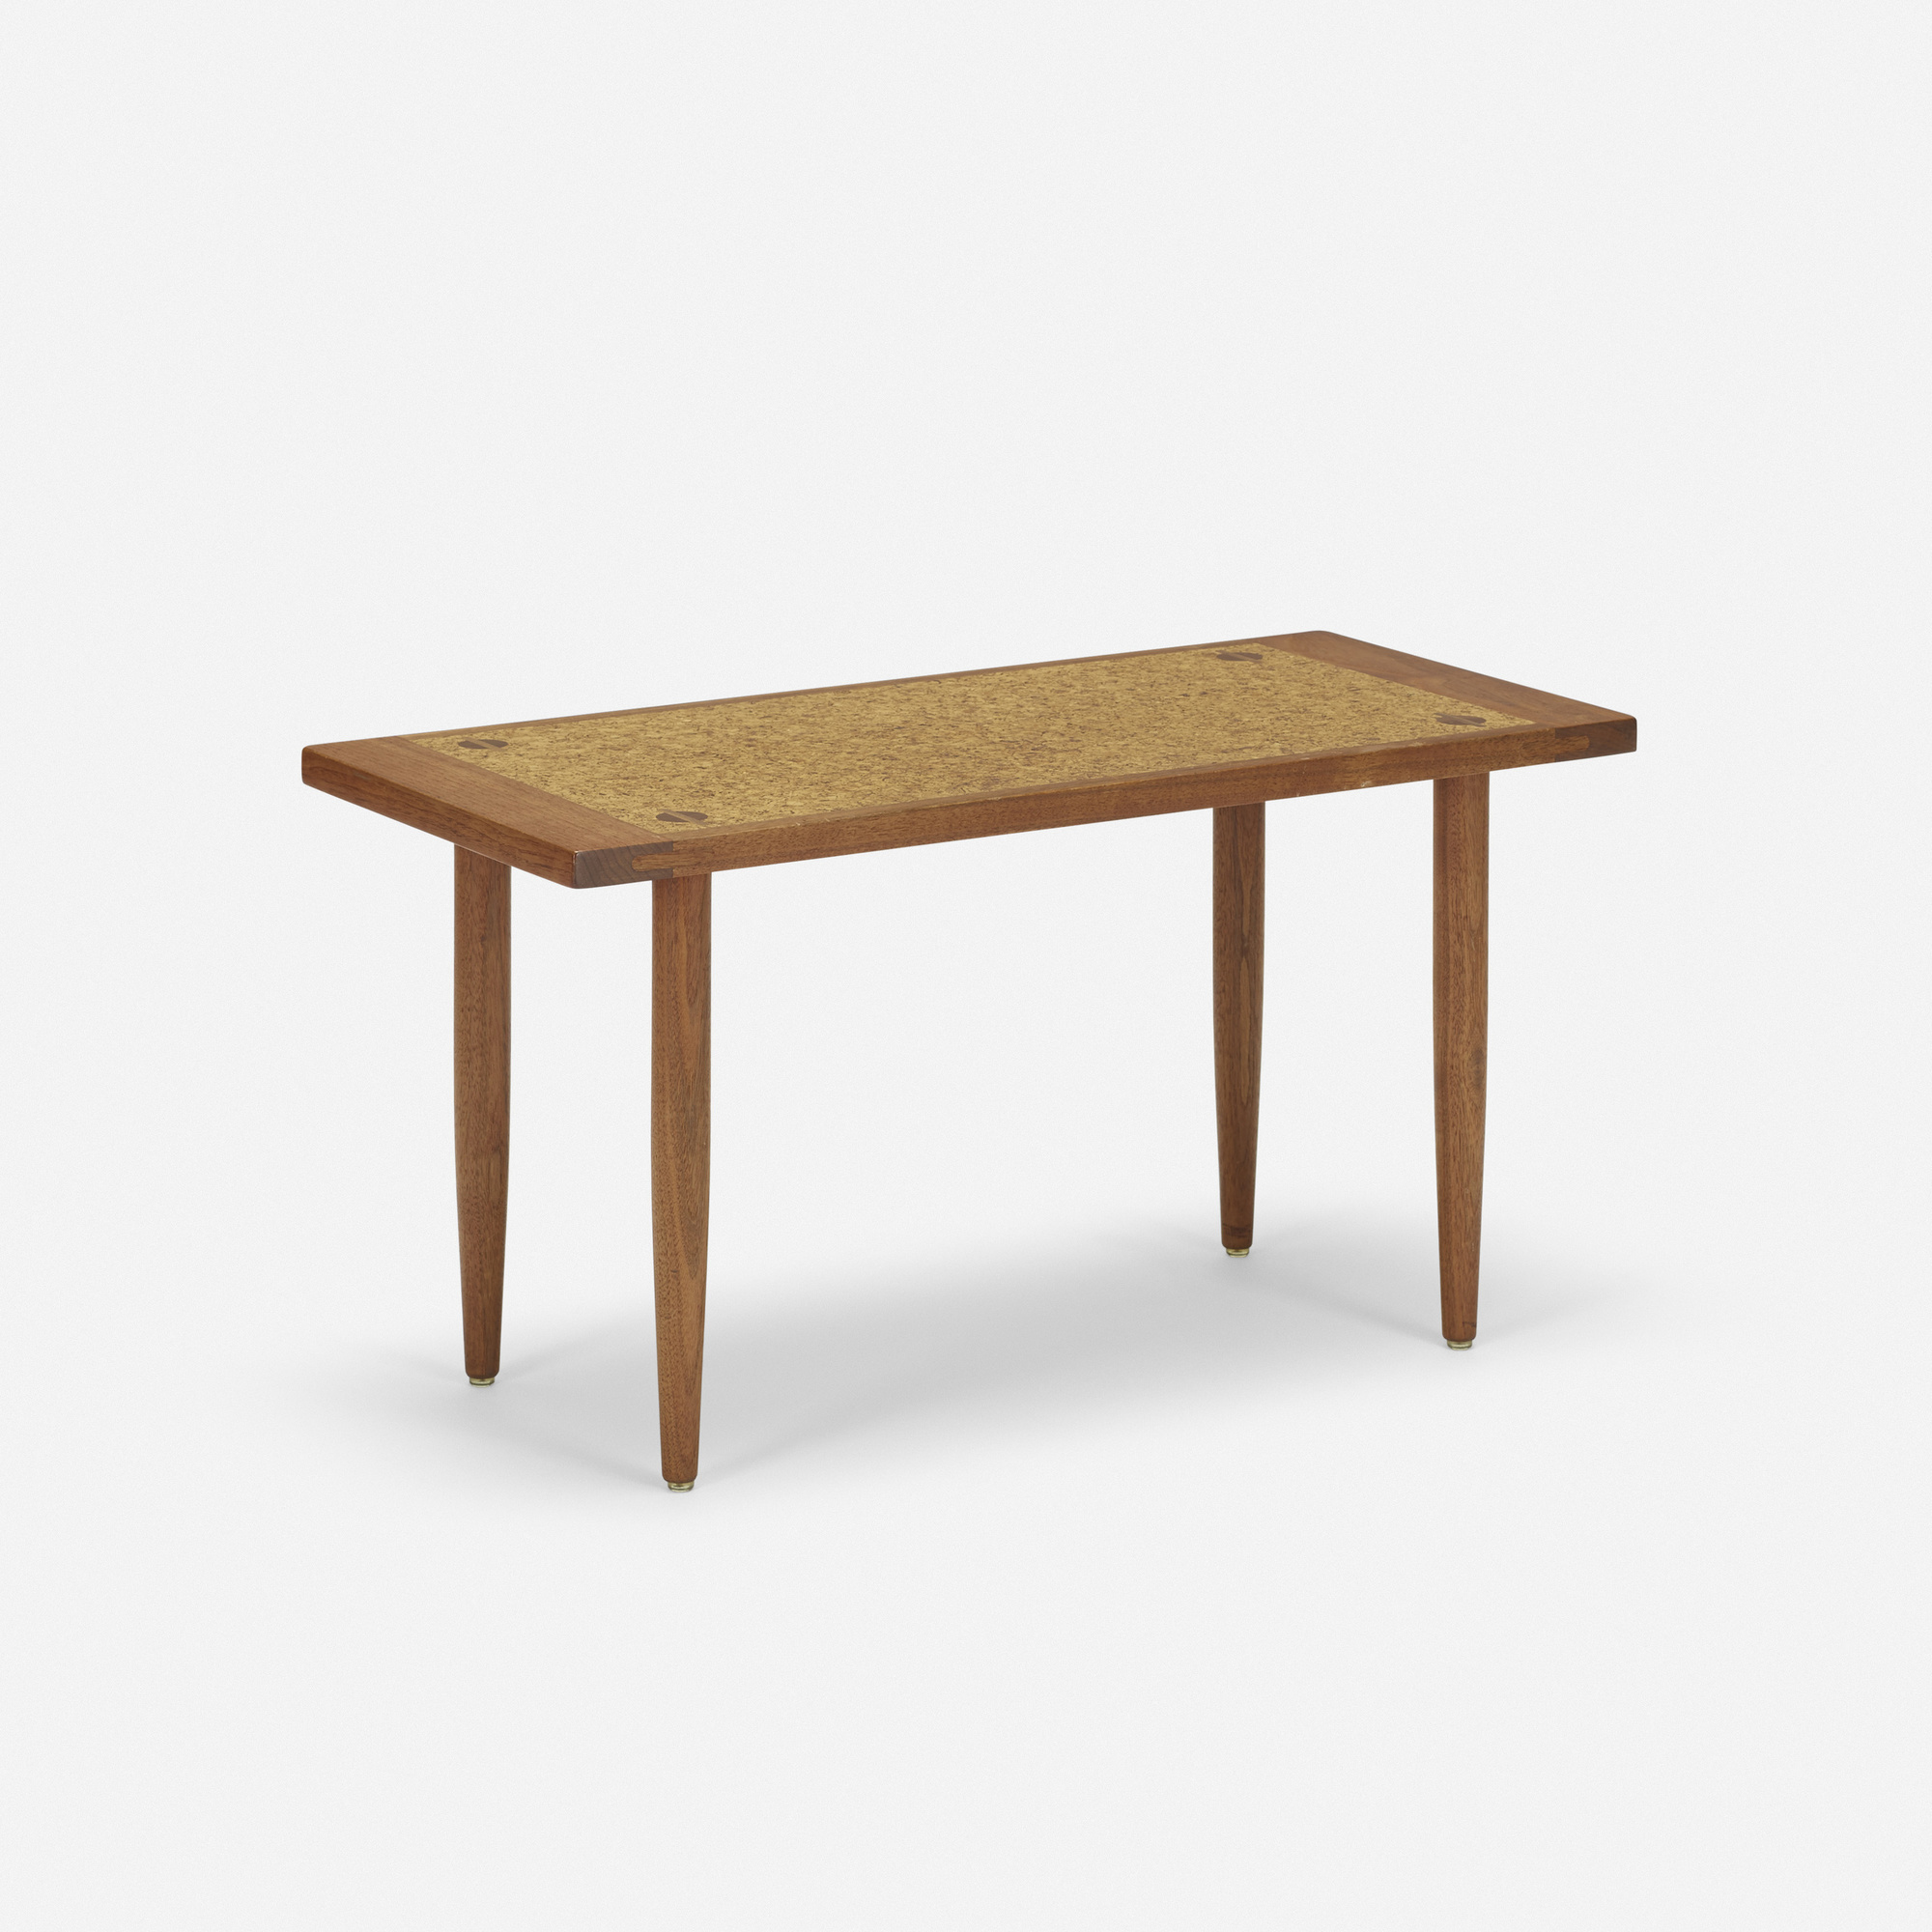 176: Sam Maloof / occasional table (1 of 5)